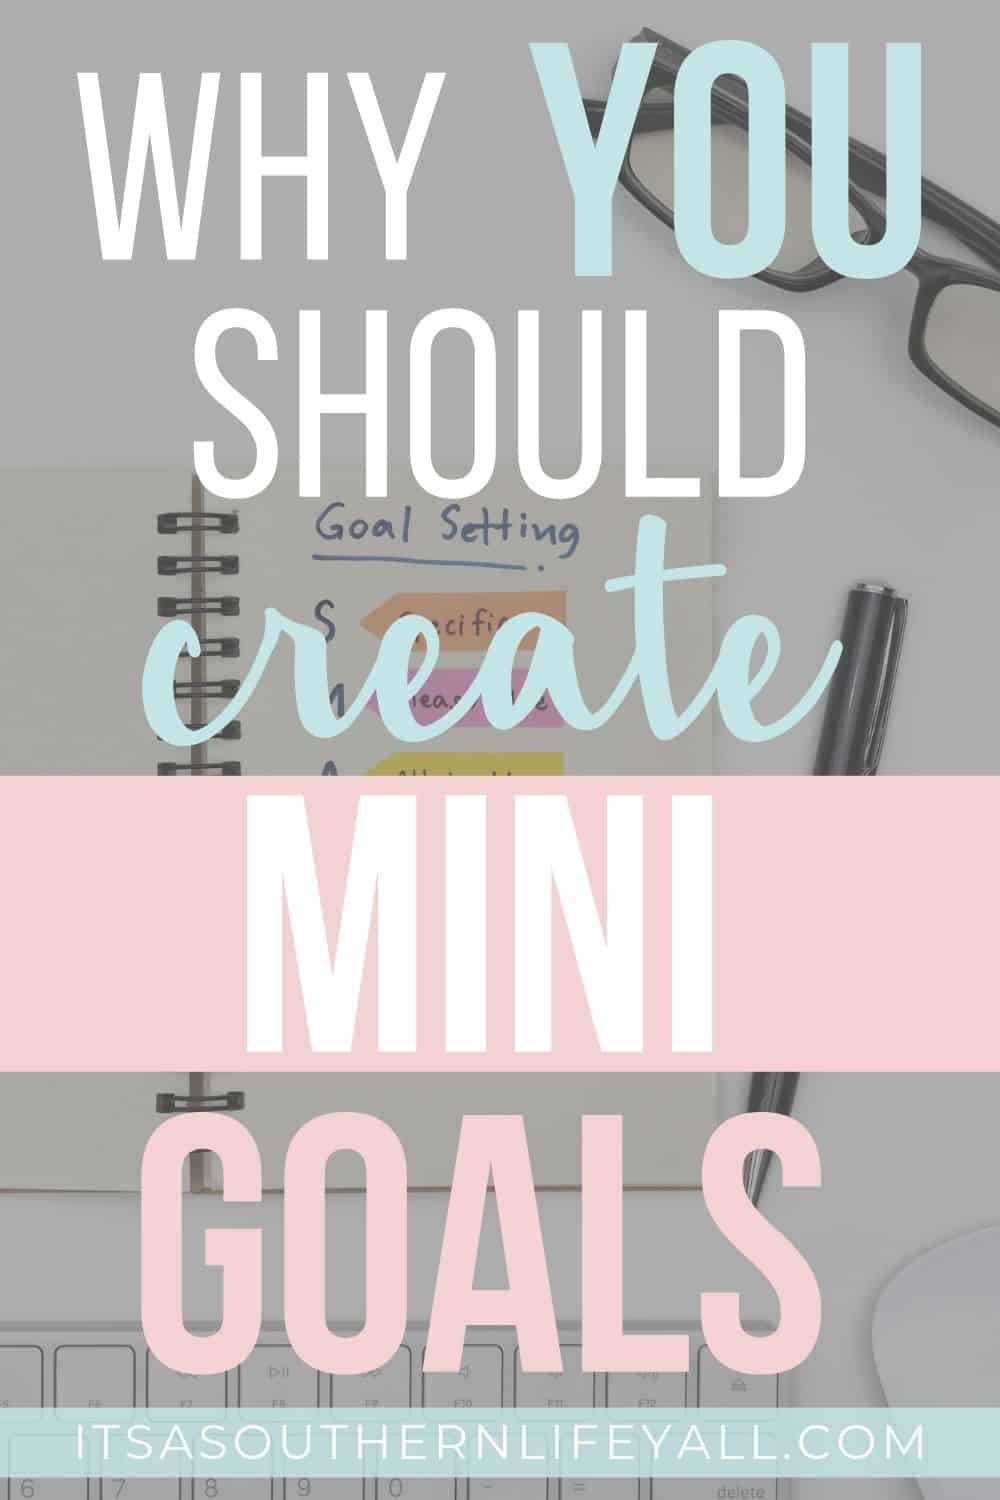 Goal setting notebook in the background with Why you should create mini goals text overlay.